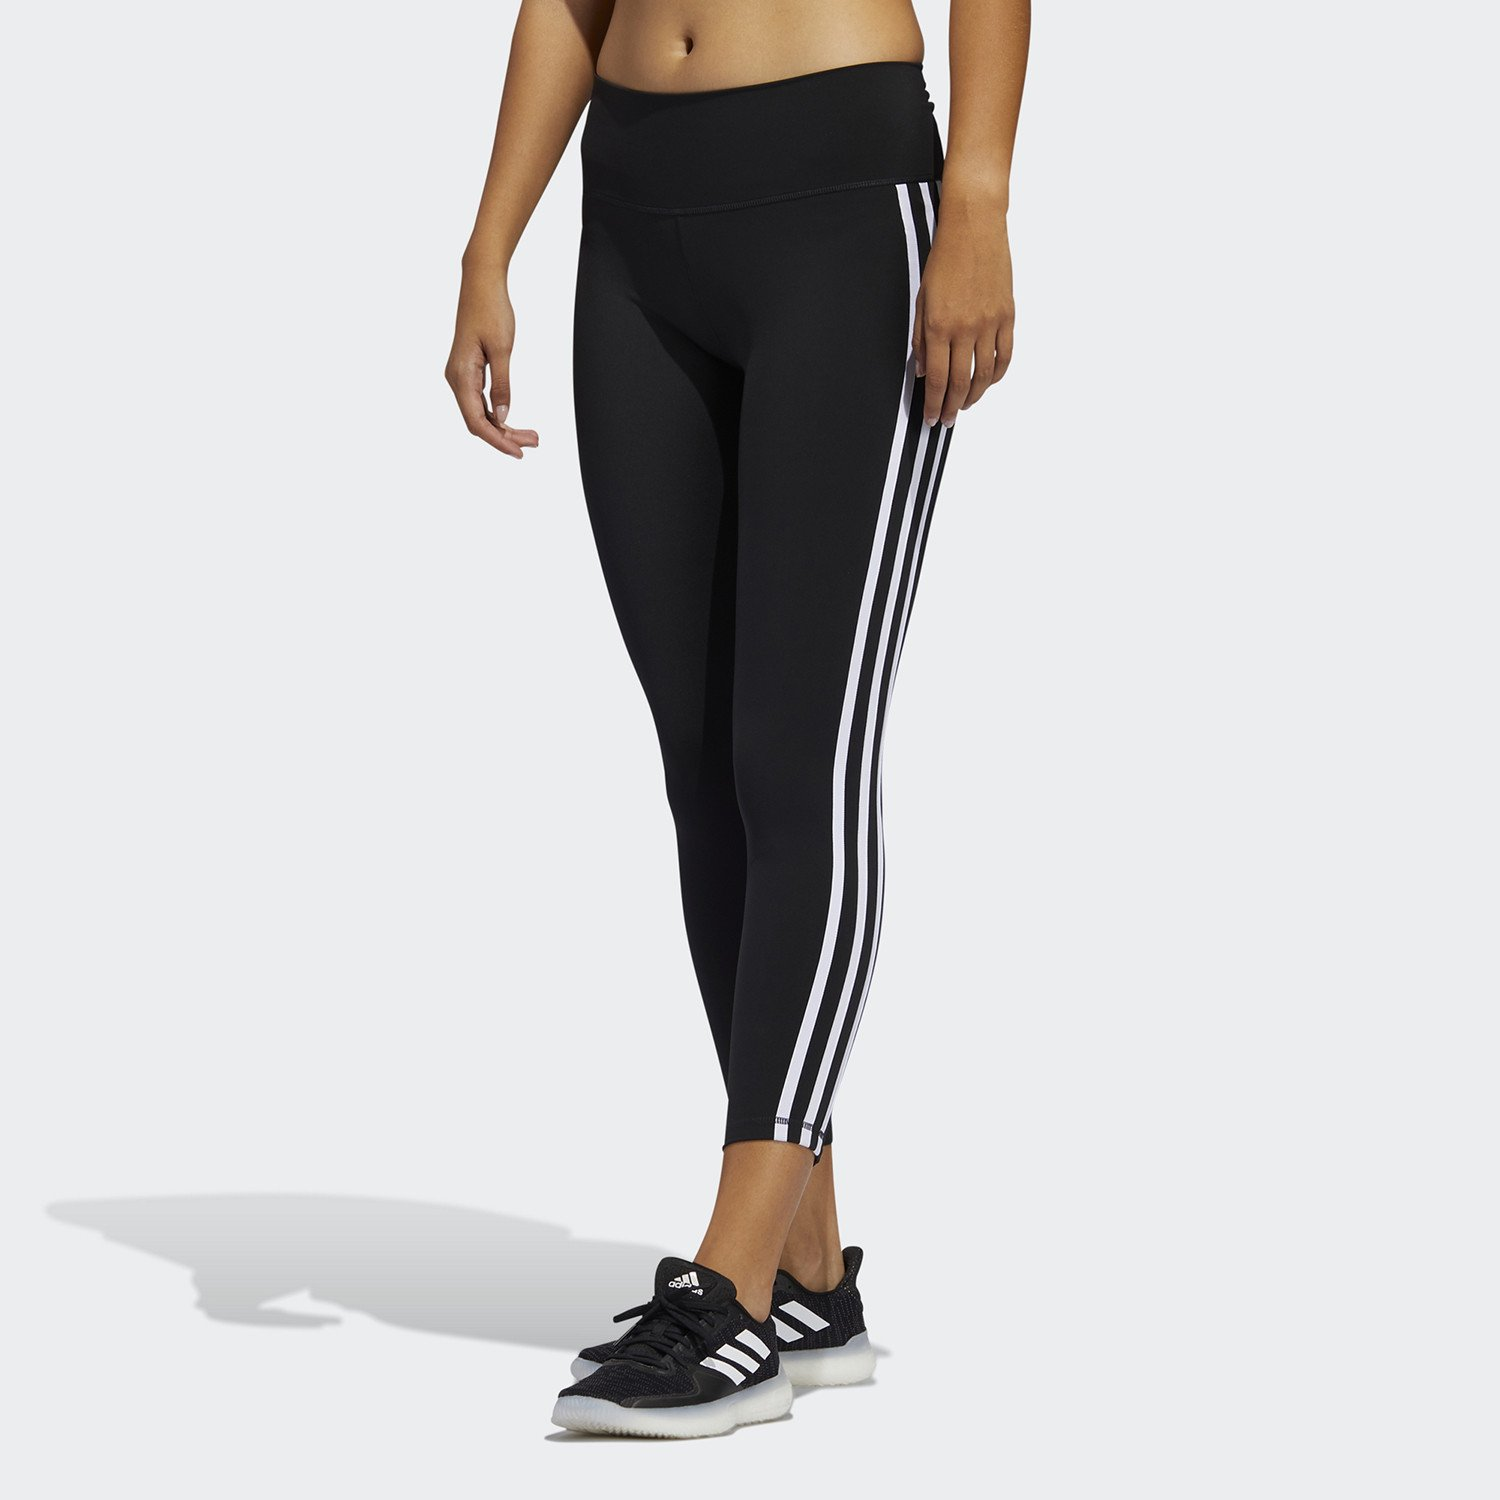 adidas Performance Believe This 3-Stripes 7/8 Tights (9000045106_1480)